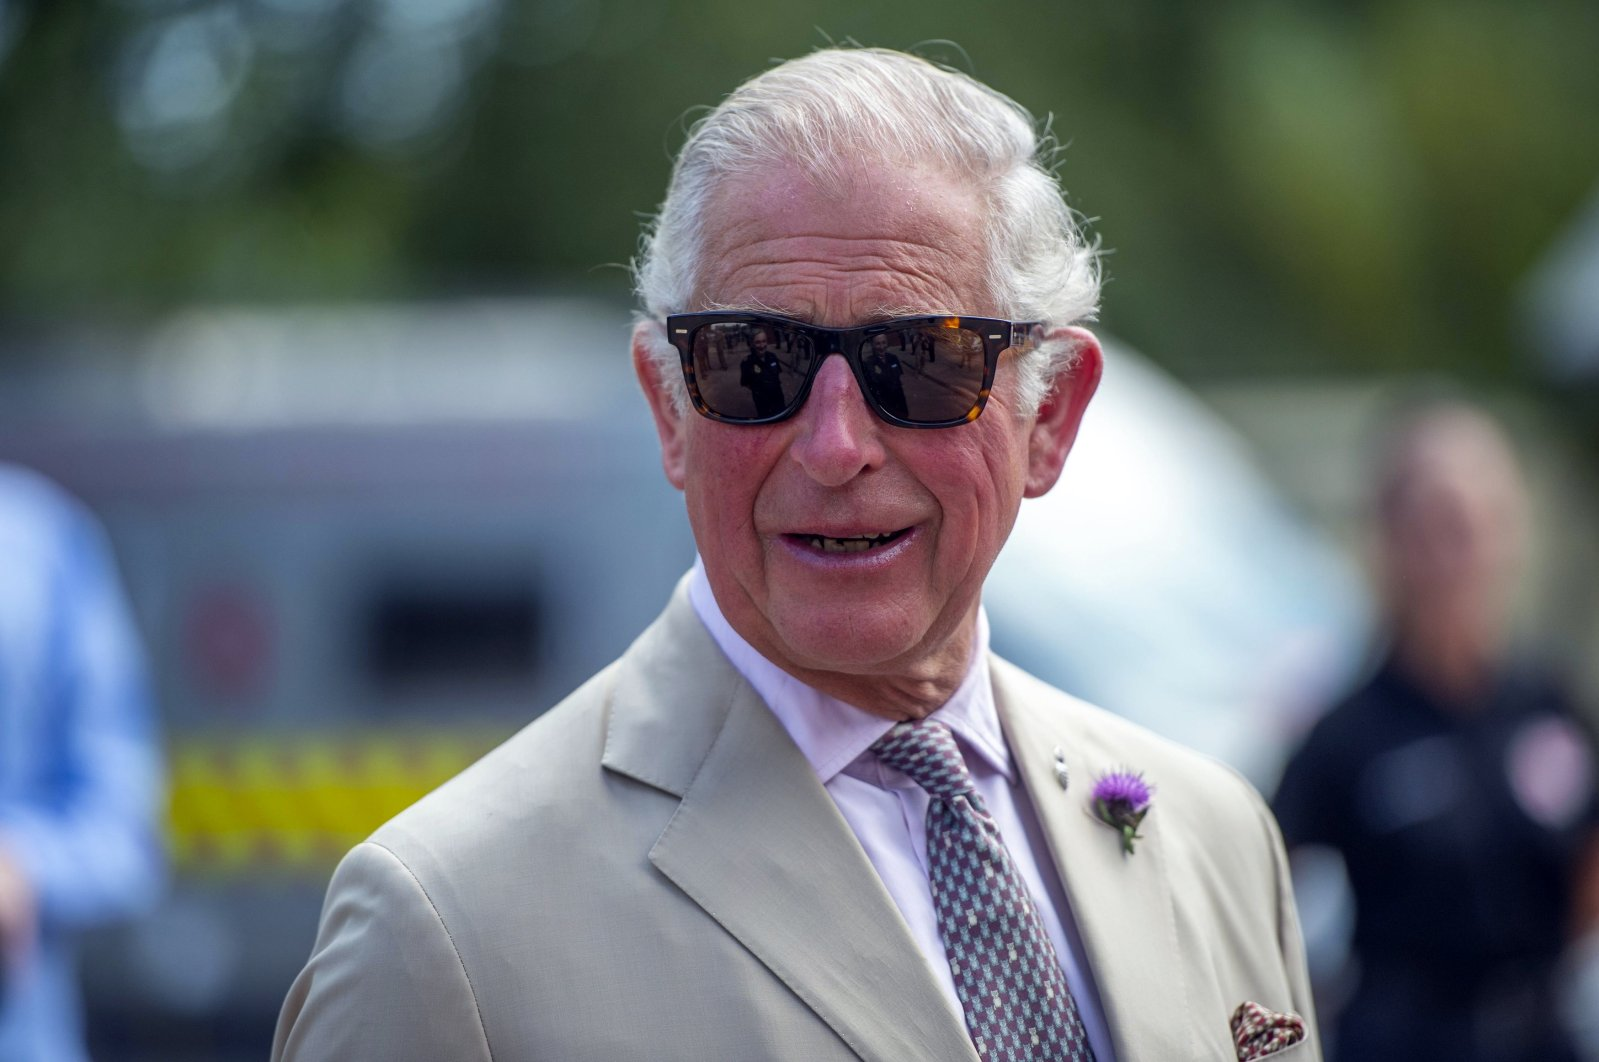 Britain's Prince Charles speaks to emergency workers during a visit to Middlemoor Fire Station, where he met Emergency Service Personnel from the local Fire Department, Police and Ambulance services, in Devon, England, July 22, 2020. (Pool photo via AP)